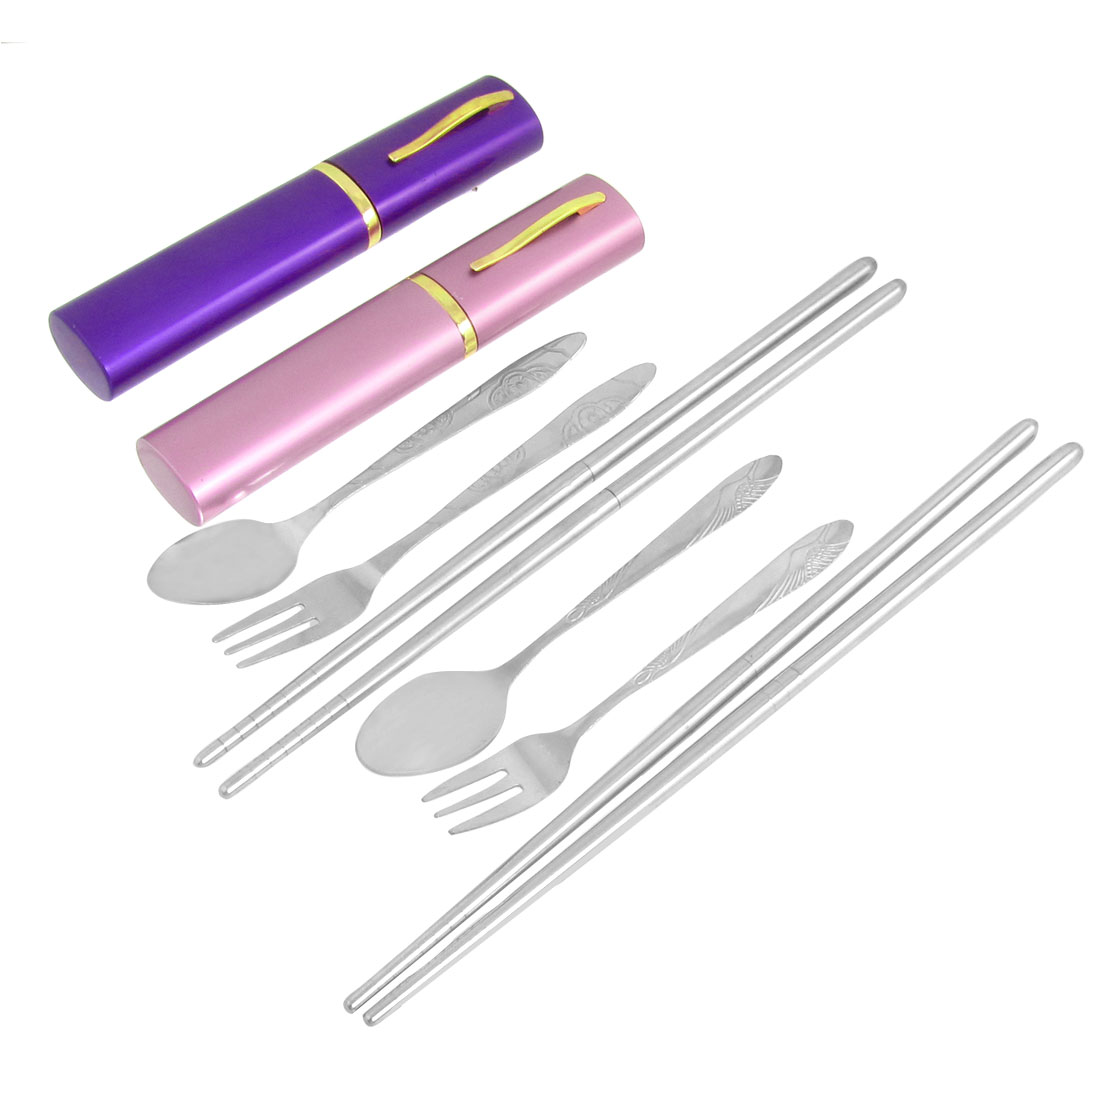 2 Sets Stainless Steel Travel Spoon Chopsticks Fork Tableware w Case